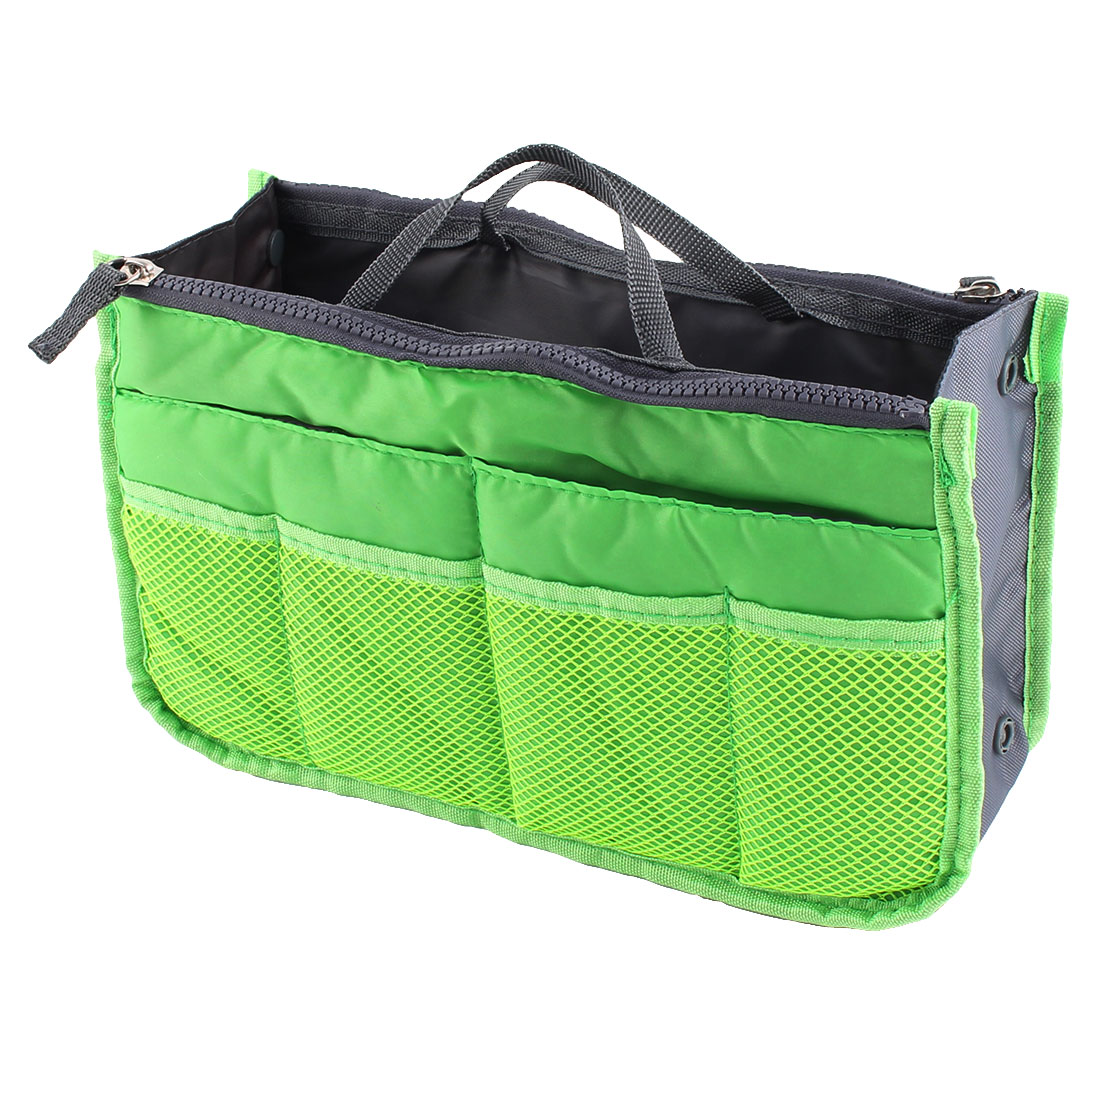 Portable Multi-functional Storage Bag Handbag Organizer Holder Container Green